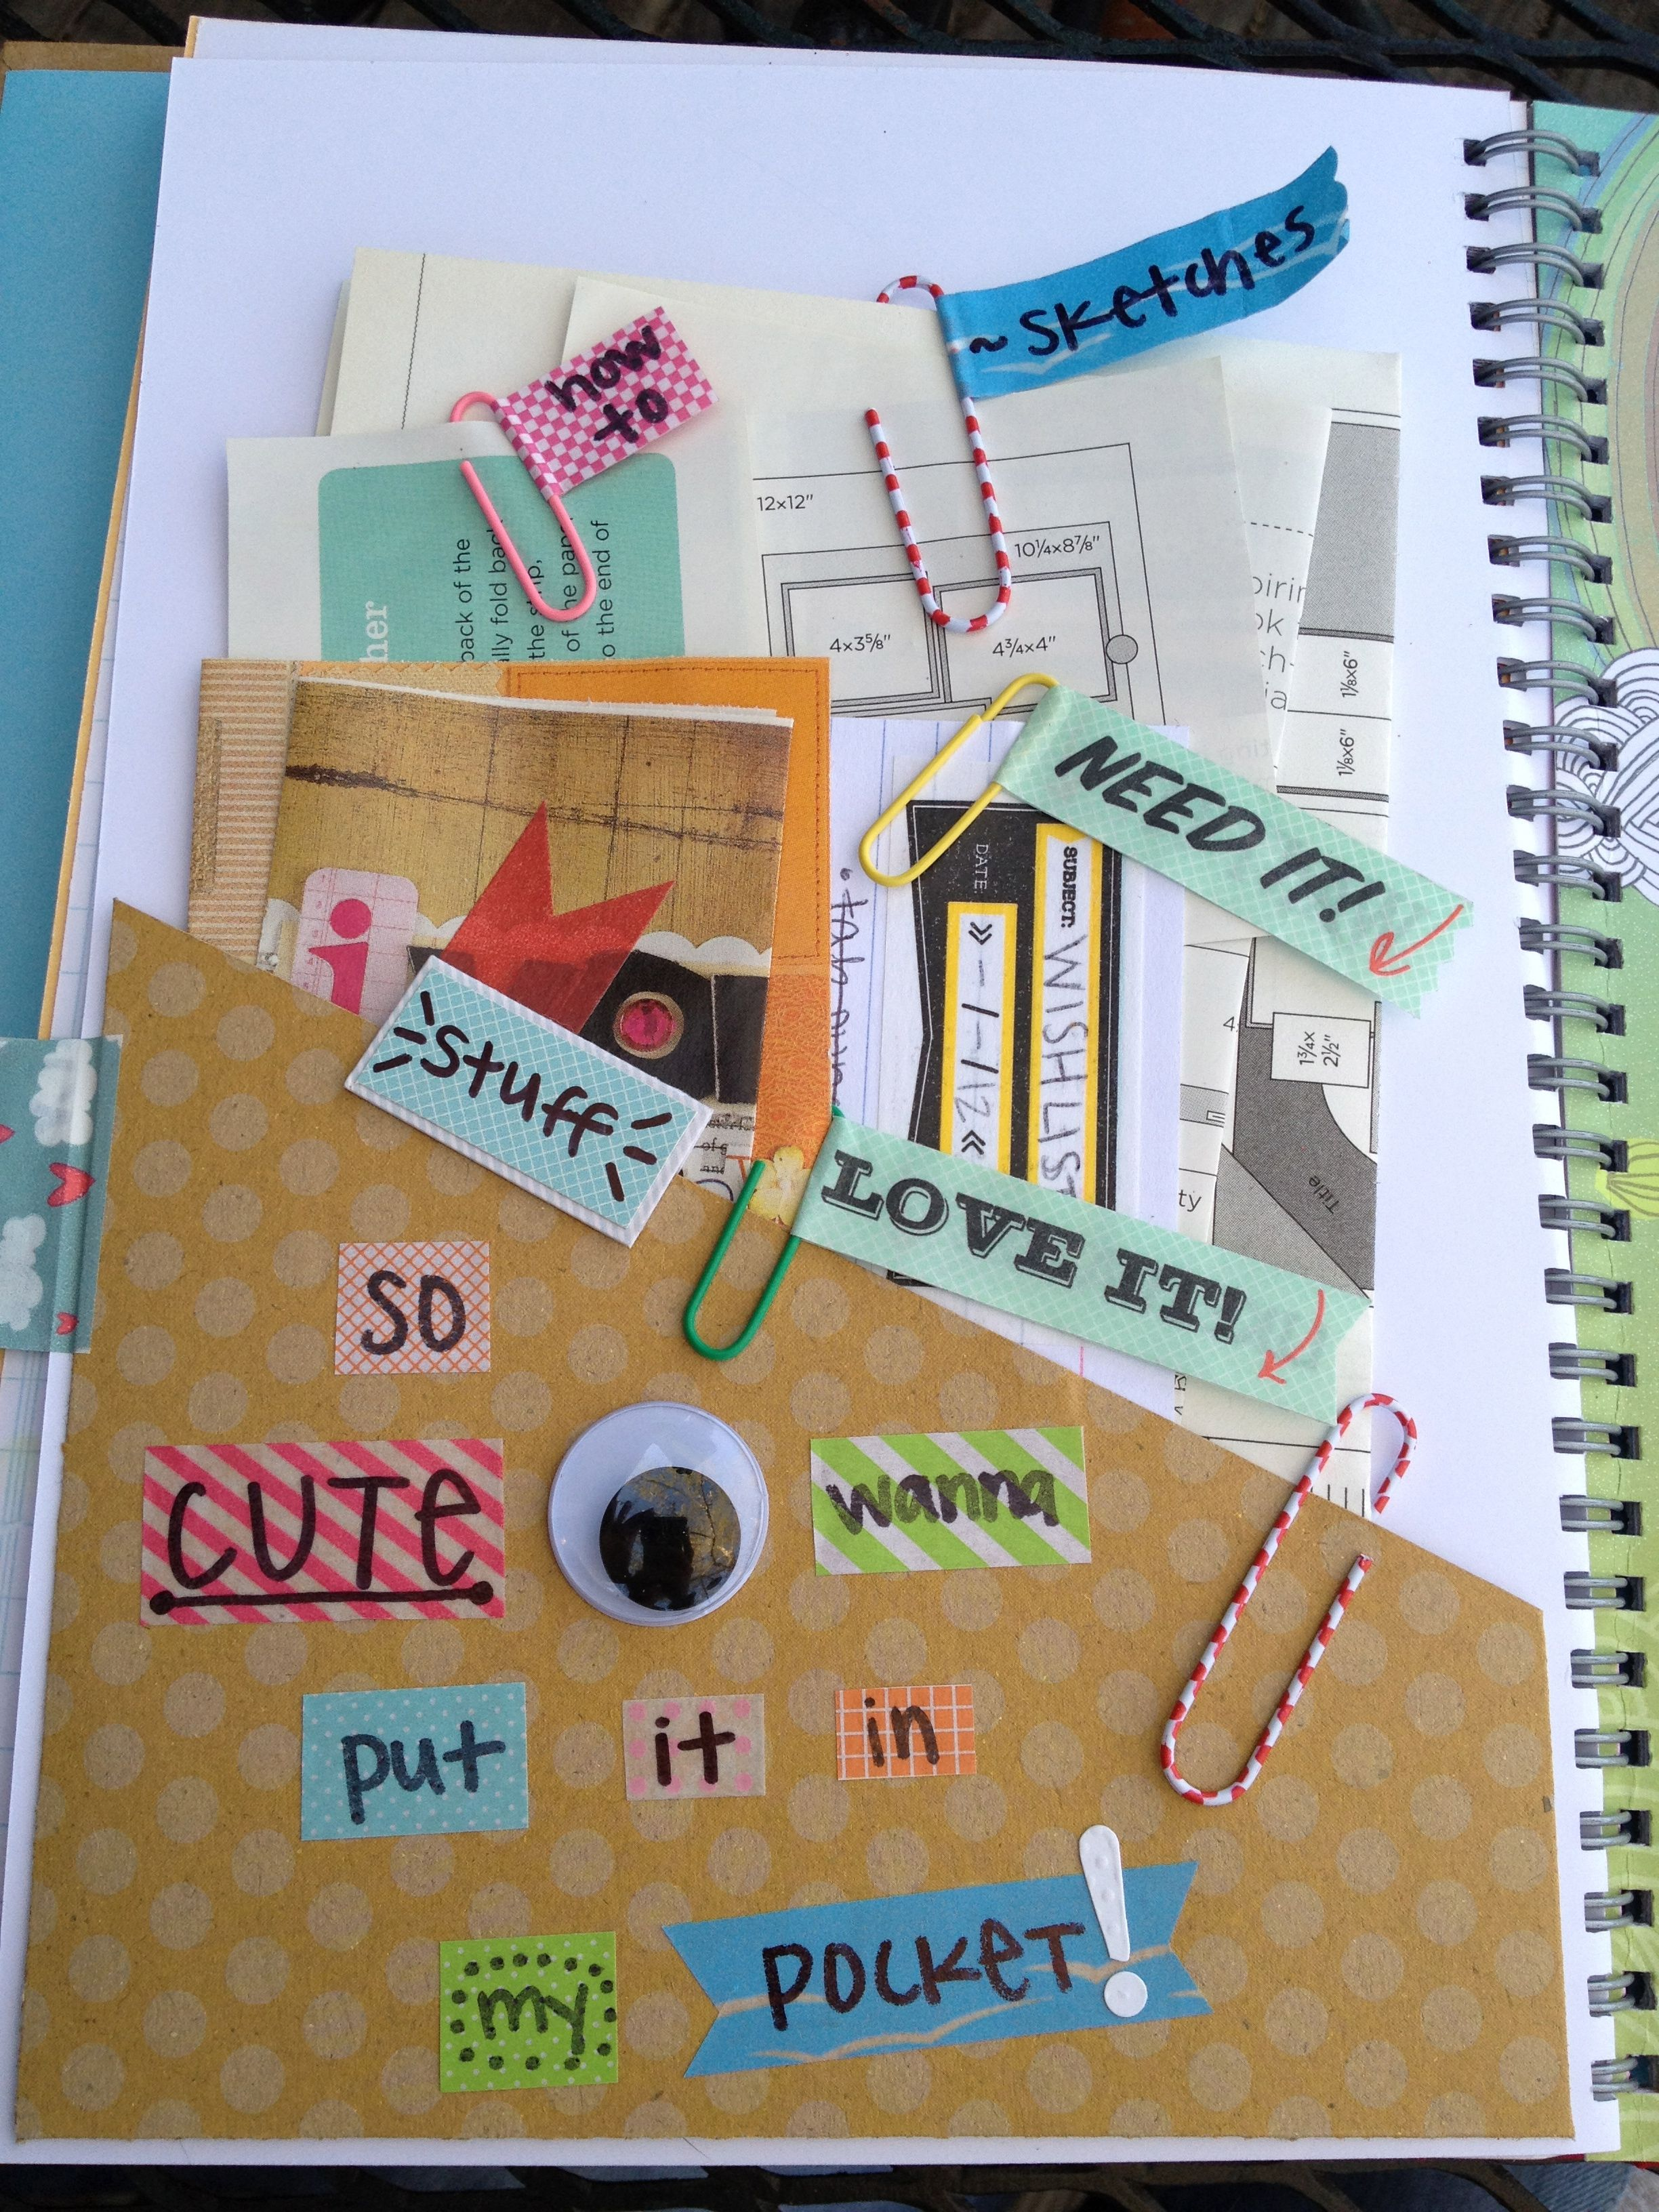 Homemade scrapbook ideas - A Homemade Version Of A Pocket That You Can Buy I Find This More Amazing Just Because Of The Handwriting And The Eye Can T Forget The Eyes